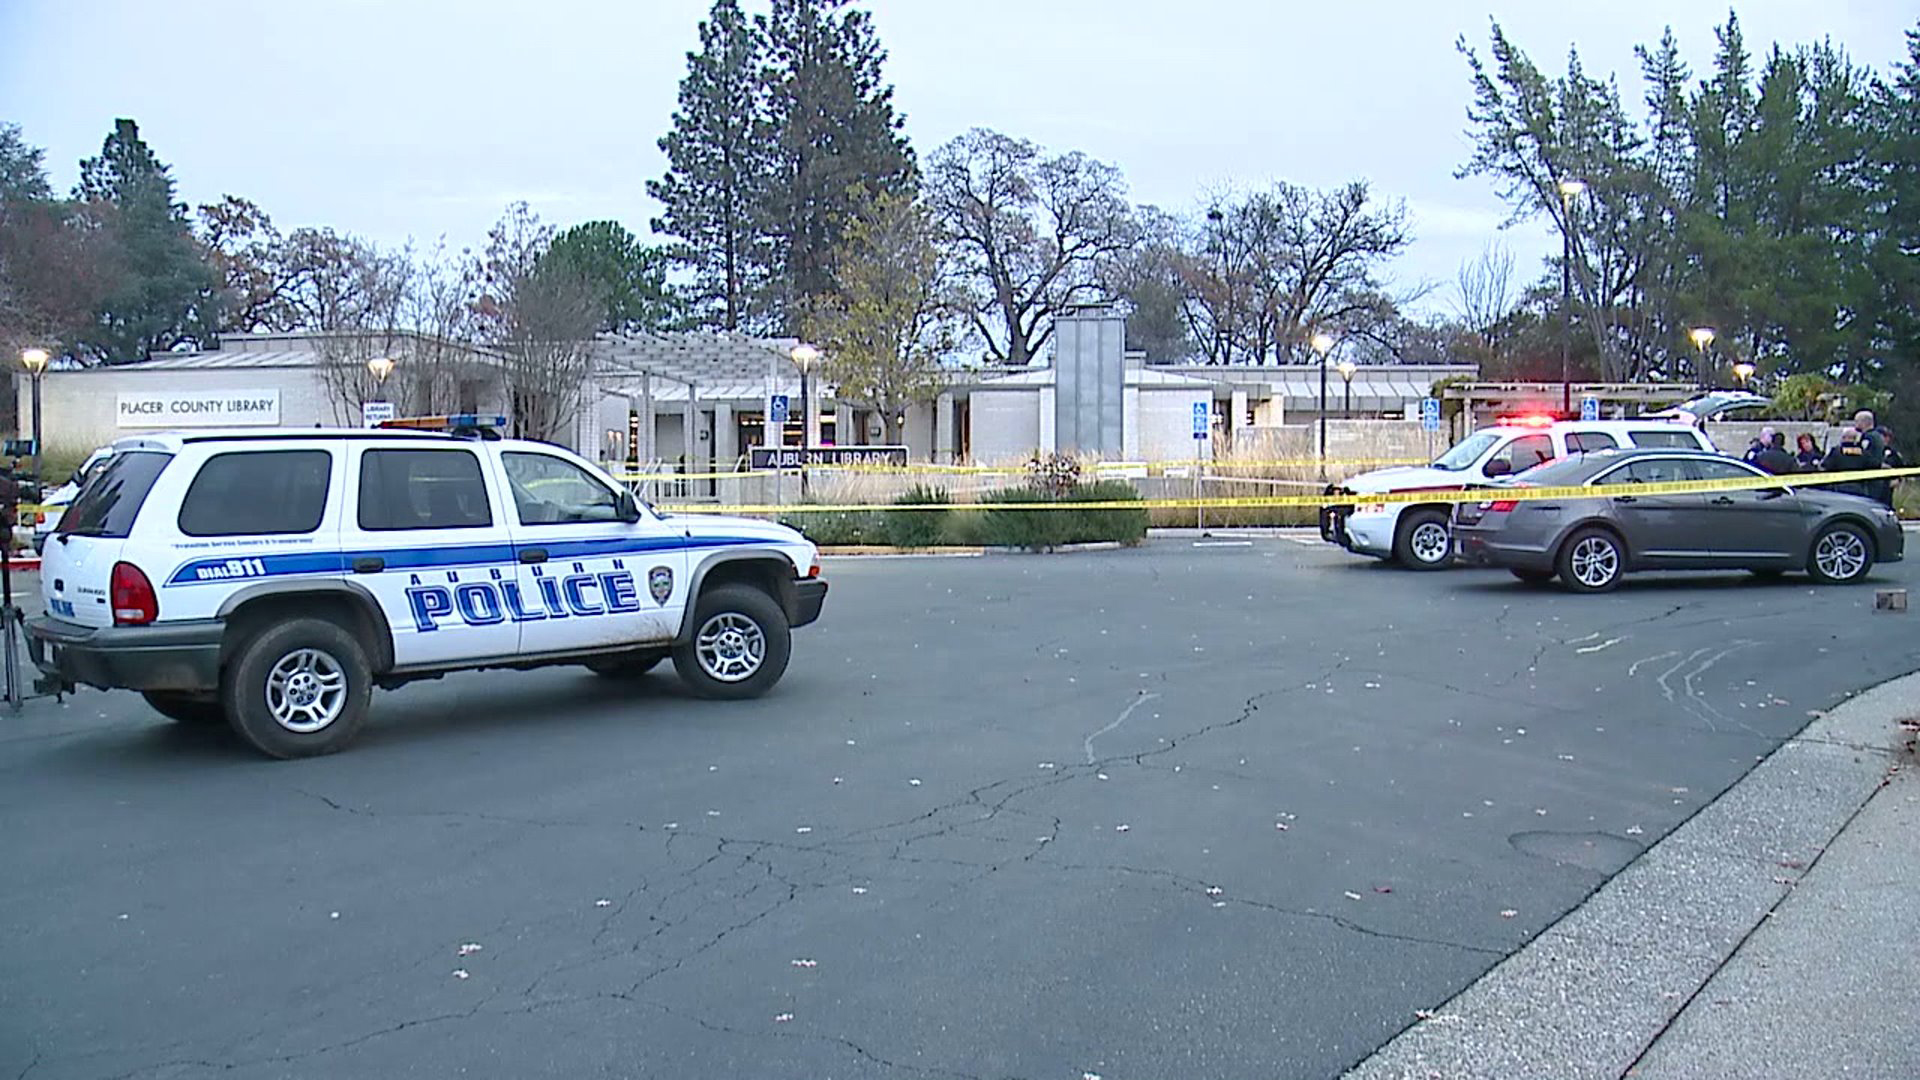 Police investigated after a stabbing at the Placer County Library in Auburn on Dec. 10, 2019. (Credit: KTXL)